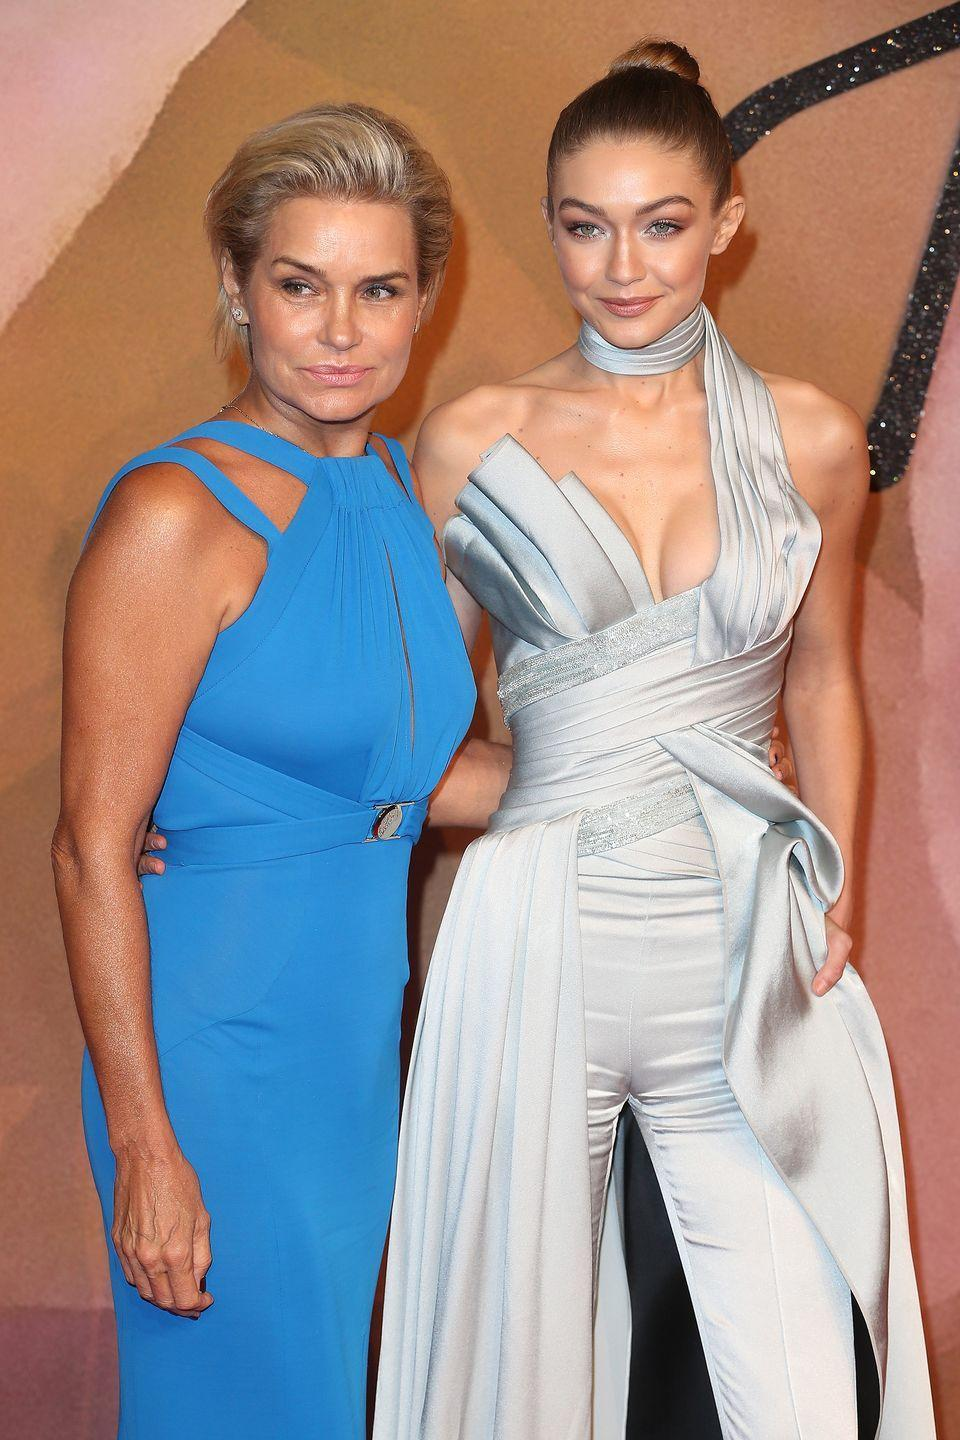 <p>A model herself, Yolanda Hadid passed down her stunning Dutch looks (and modeling chops) to her eldest daughter, Gigi. <br></p>